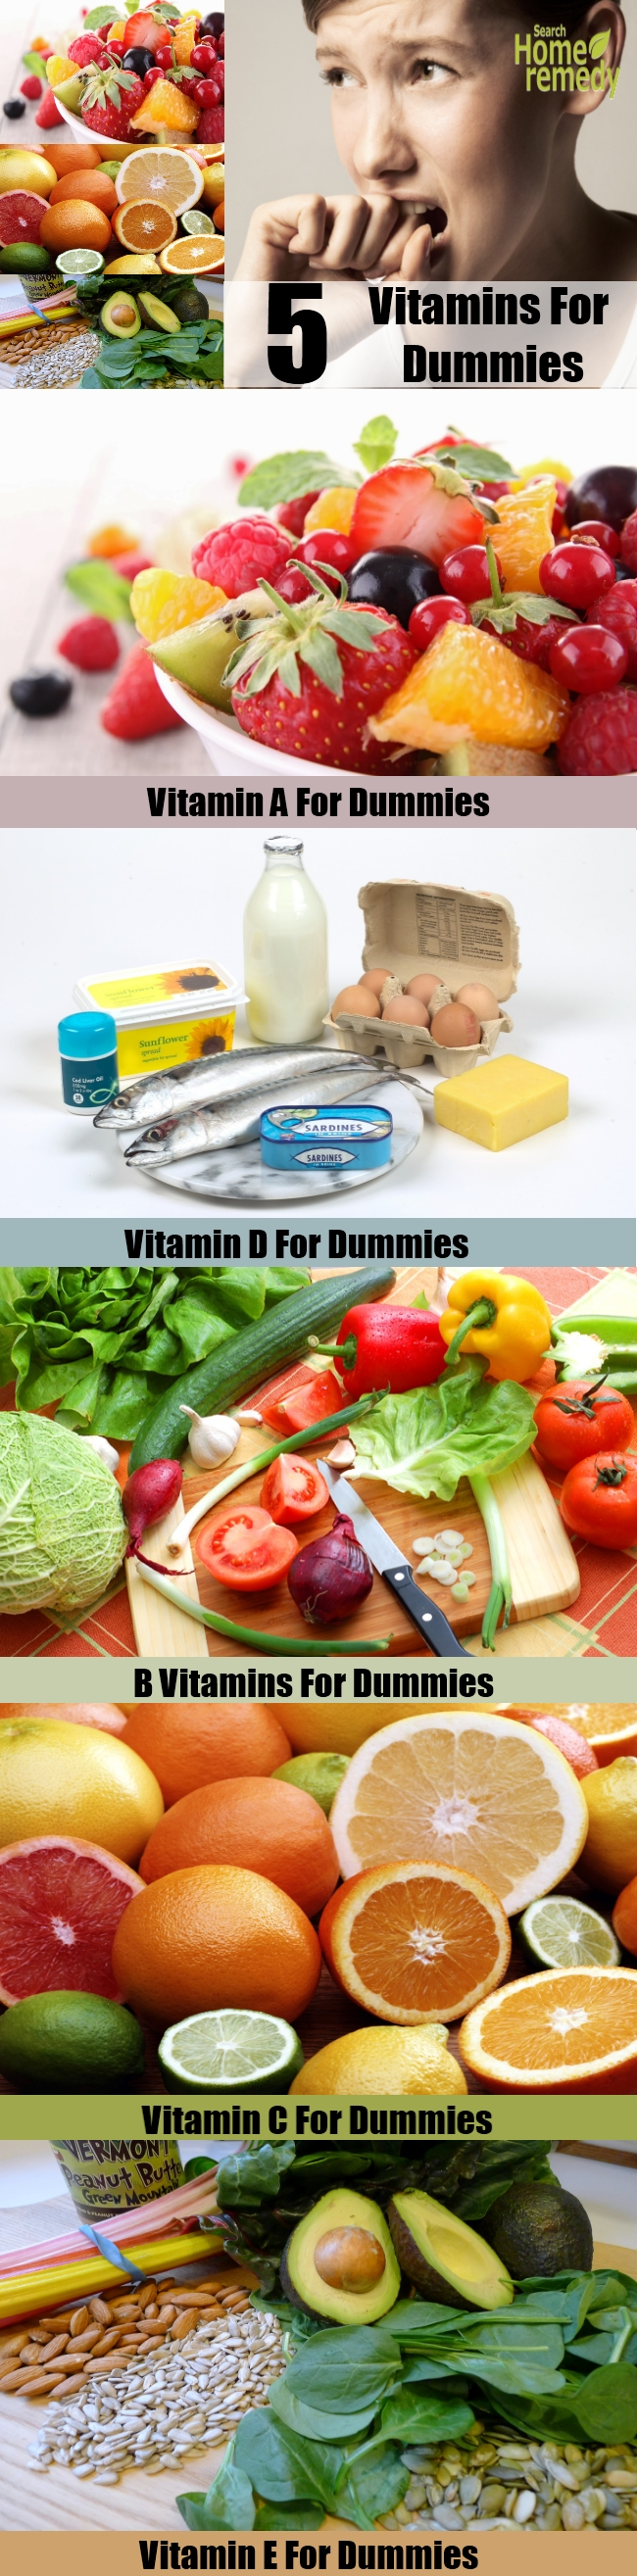 Top 5 Vitamins For Dummies